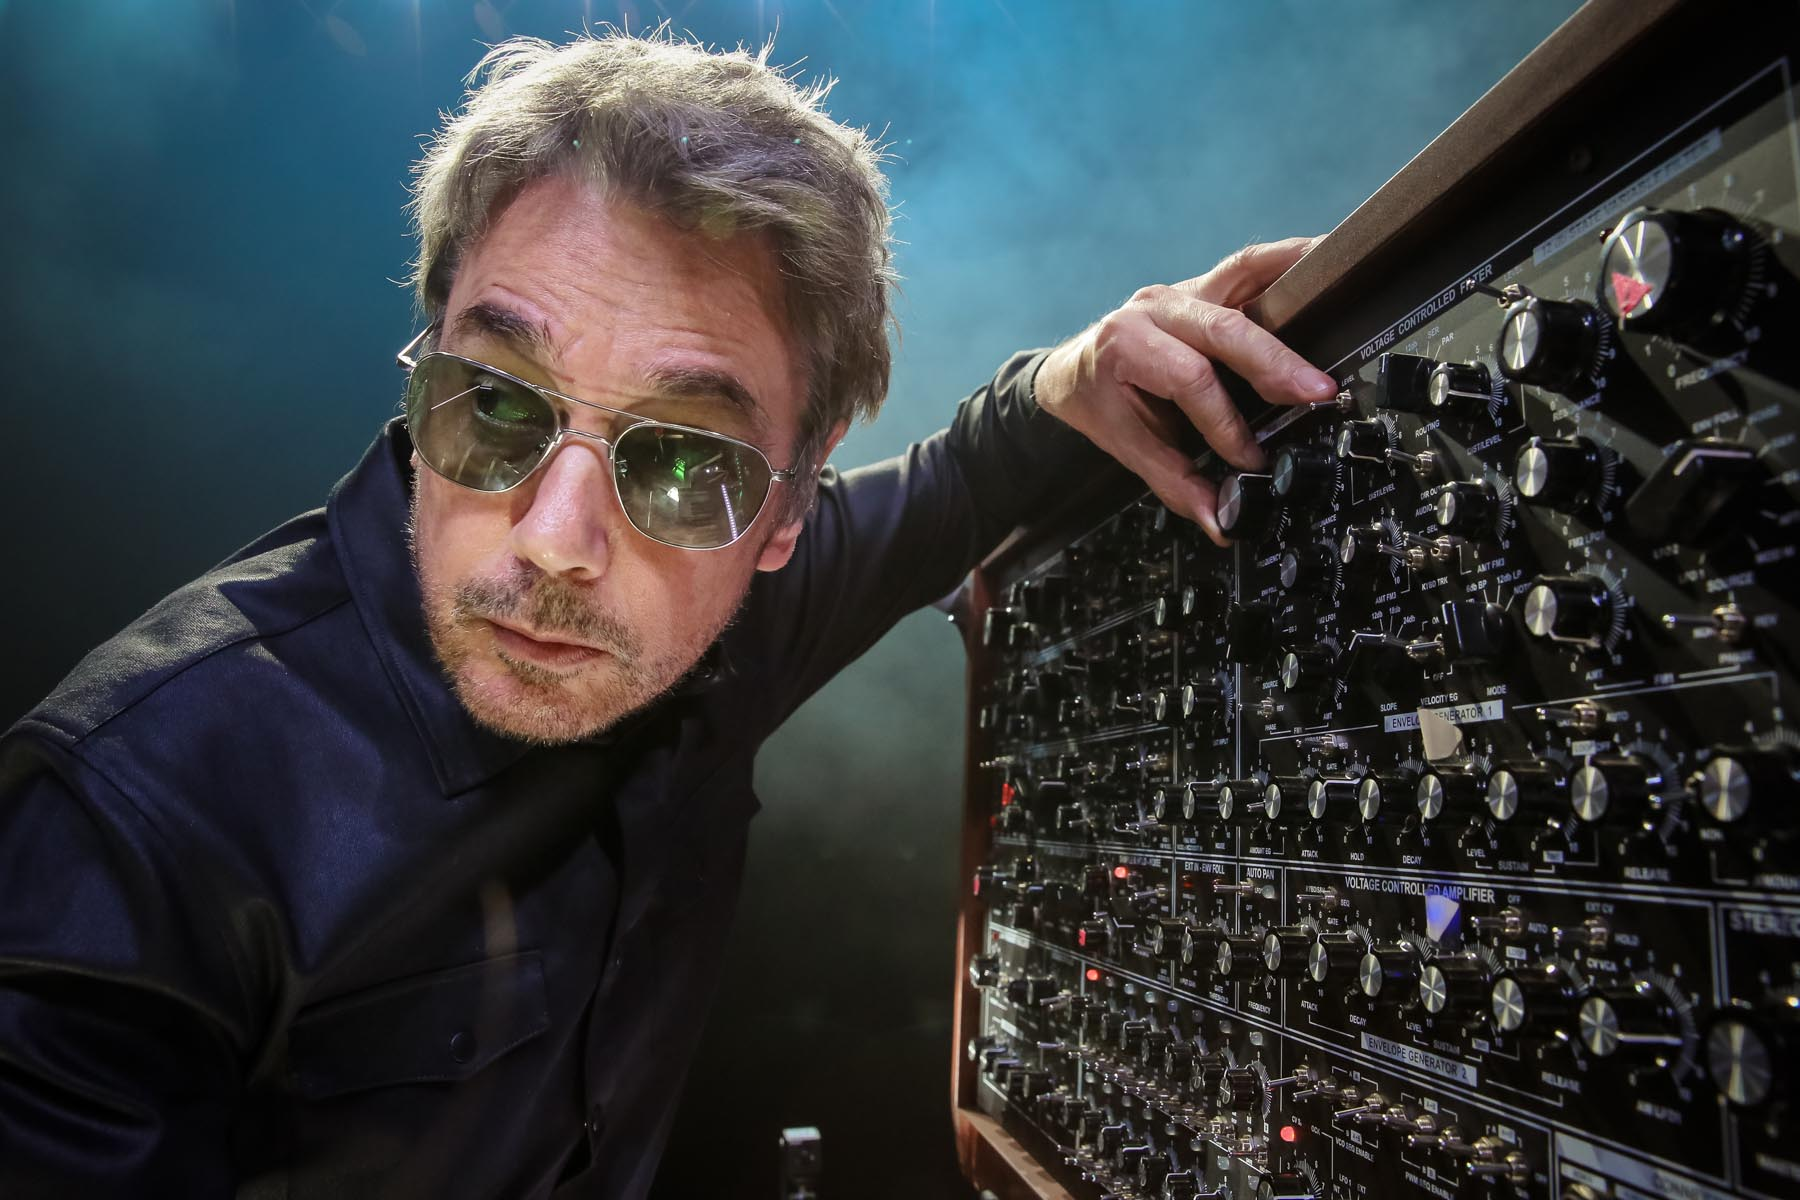 Jean Michel Jarre in London by Christie Goodwin